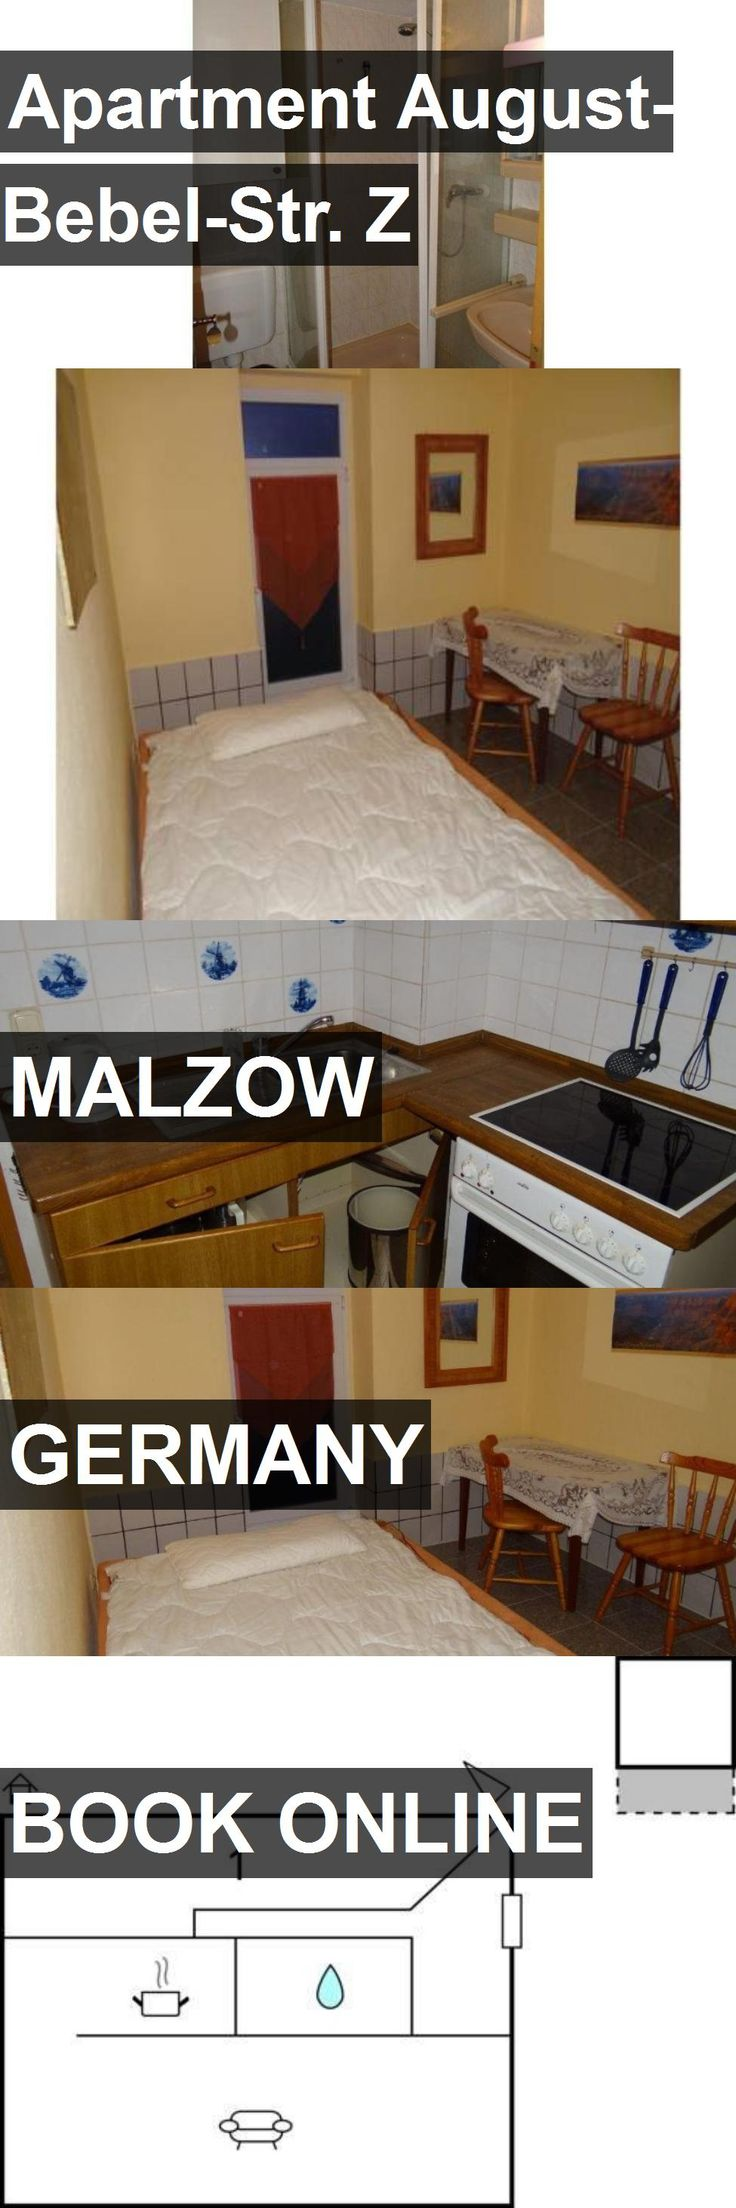 Hotel Apartment August-Bebel-Str. Z in Malzow, Germany. For more information, photos, reviews and best prices please follow the link. #Germany #Malzow #hotel #travel #vacation